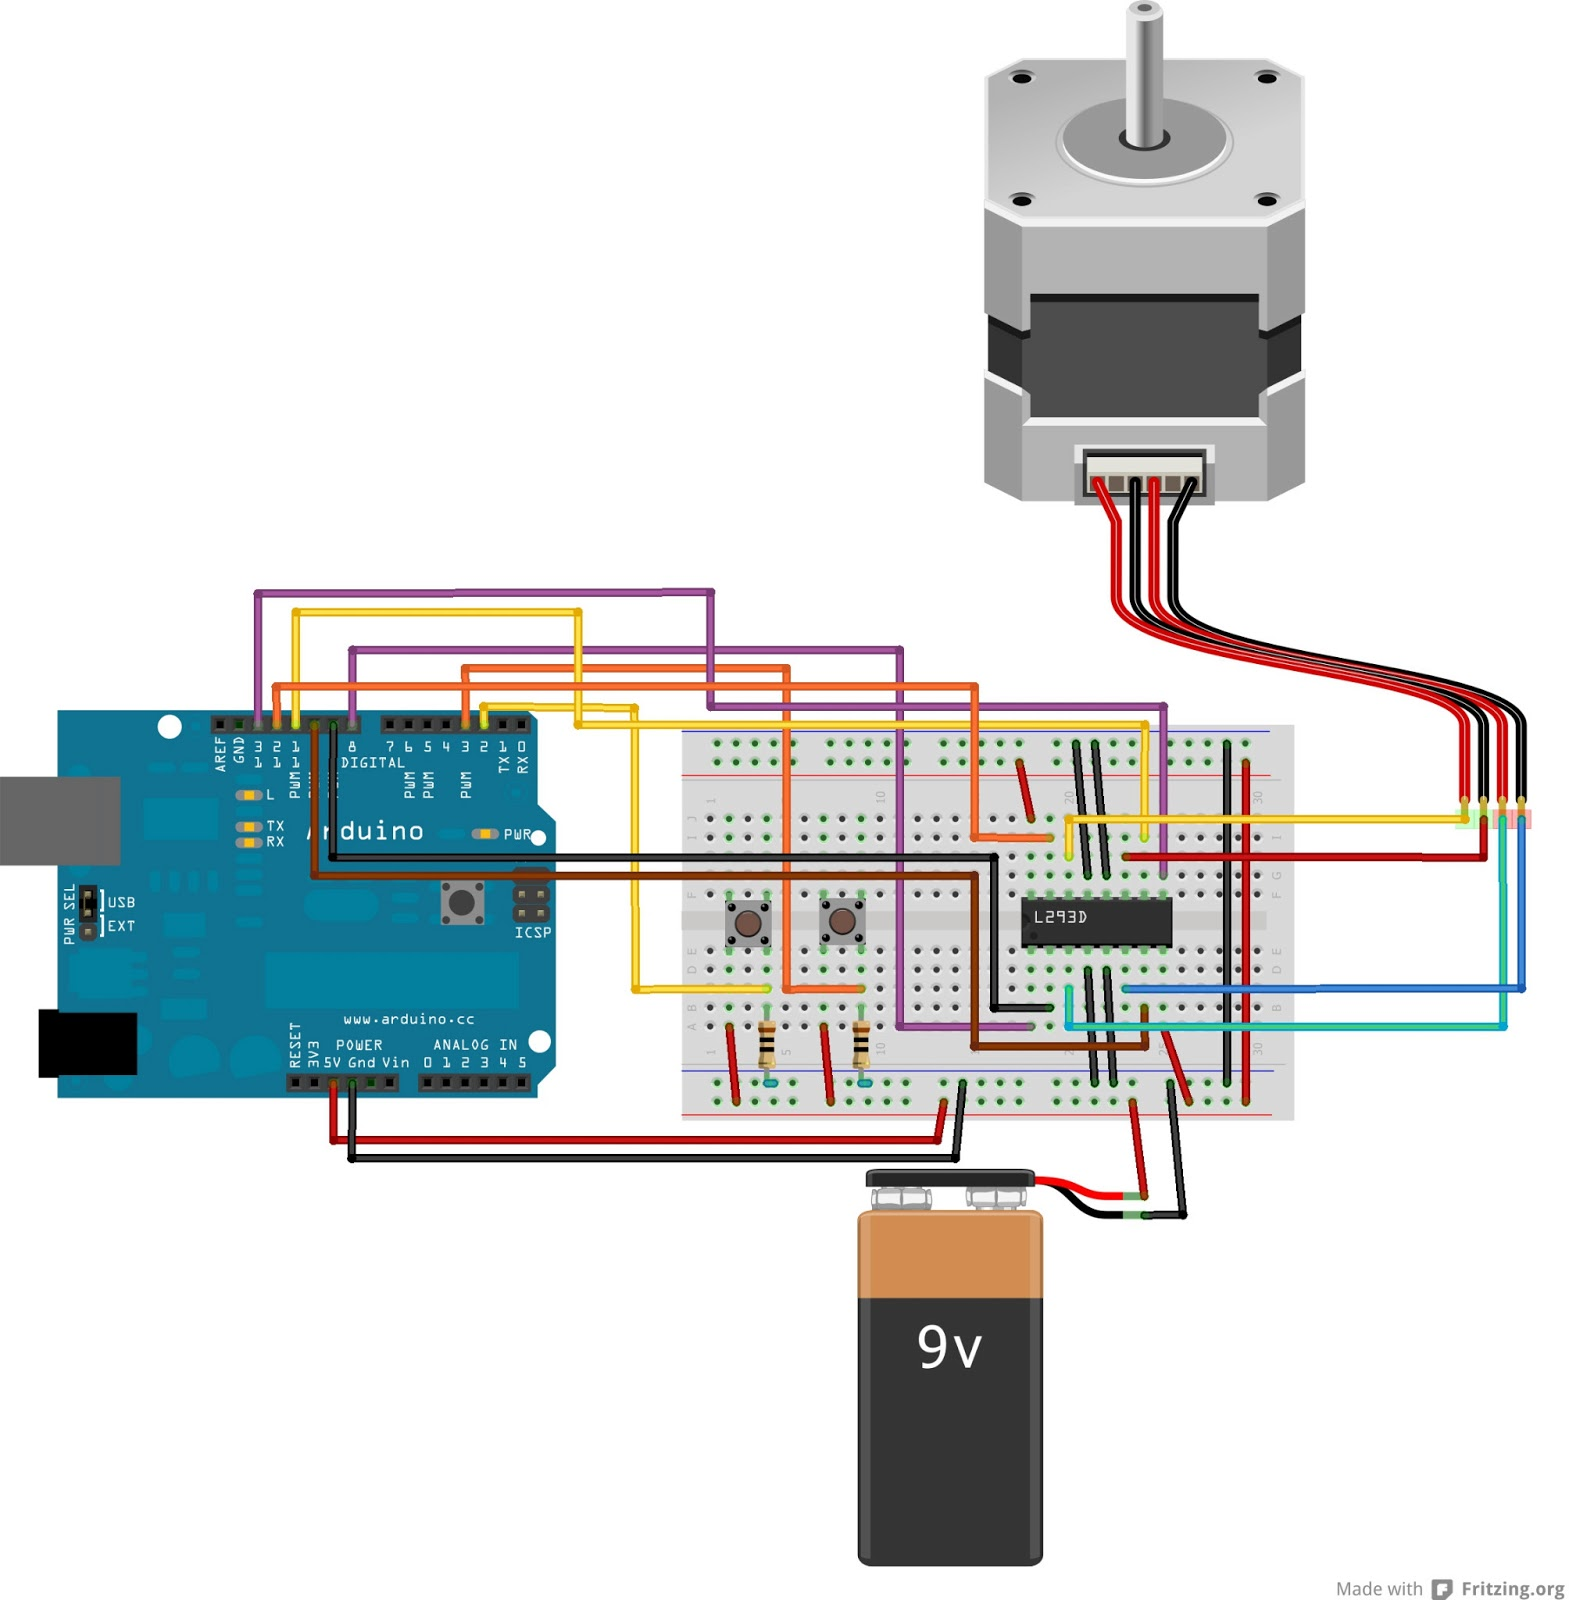 Arch1392 2013 tharida rattanajaturon june 2013 for Stepper motor control system